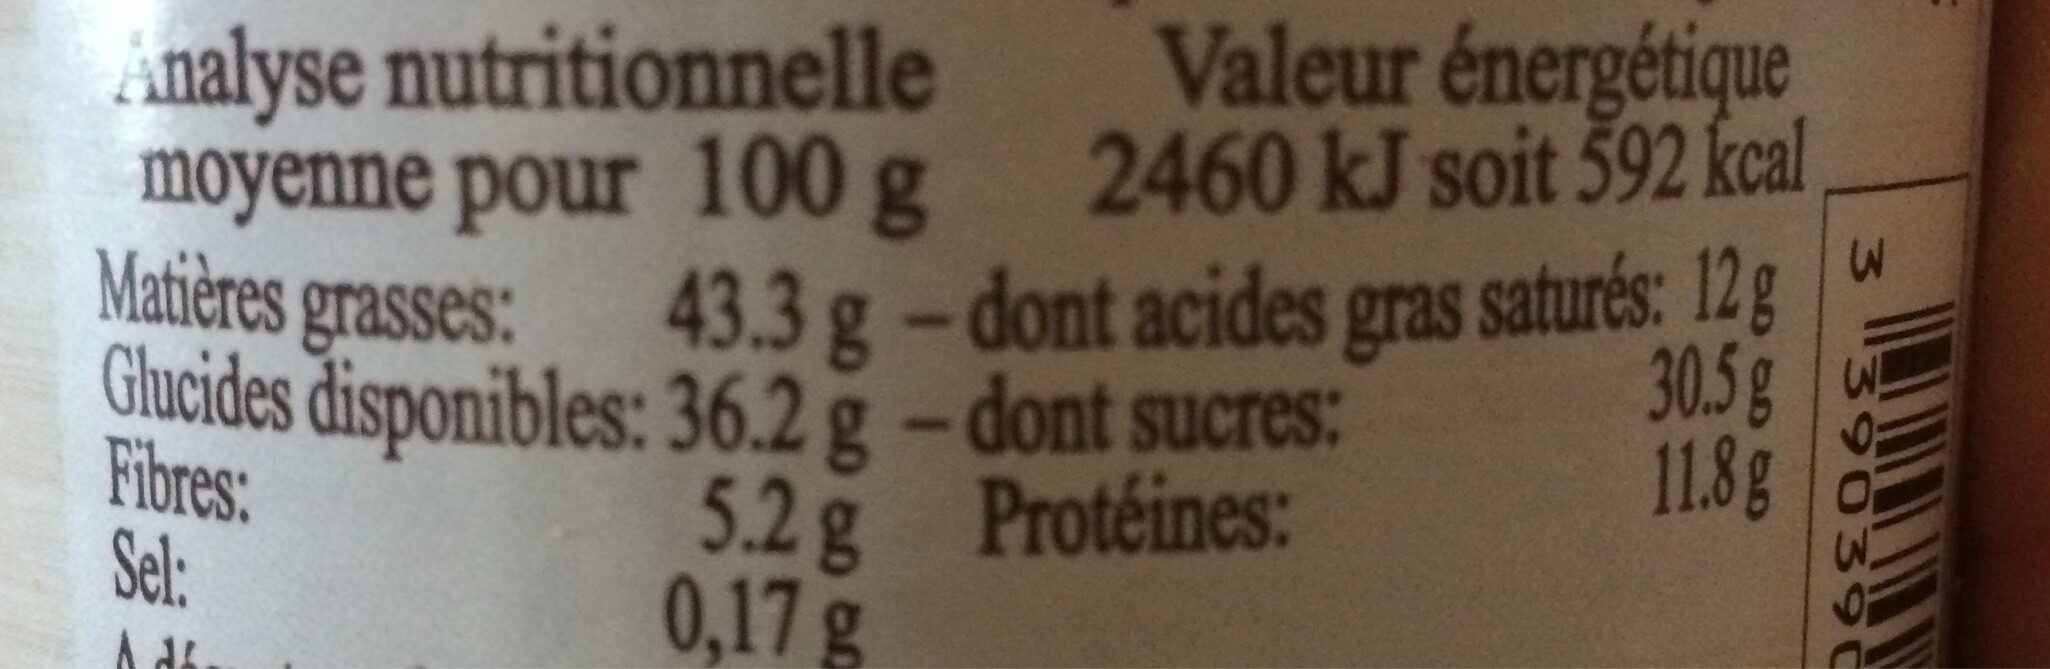 Chocolade Crunchy - Informations nutritionnelles